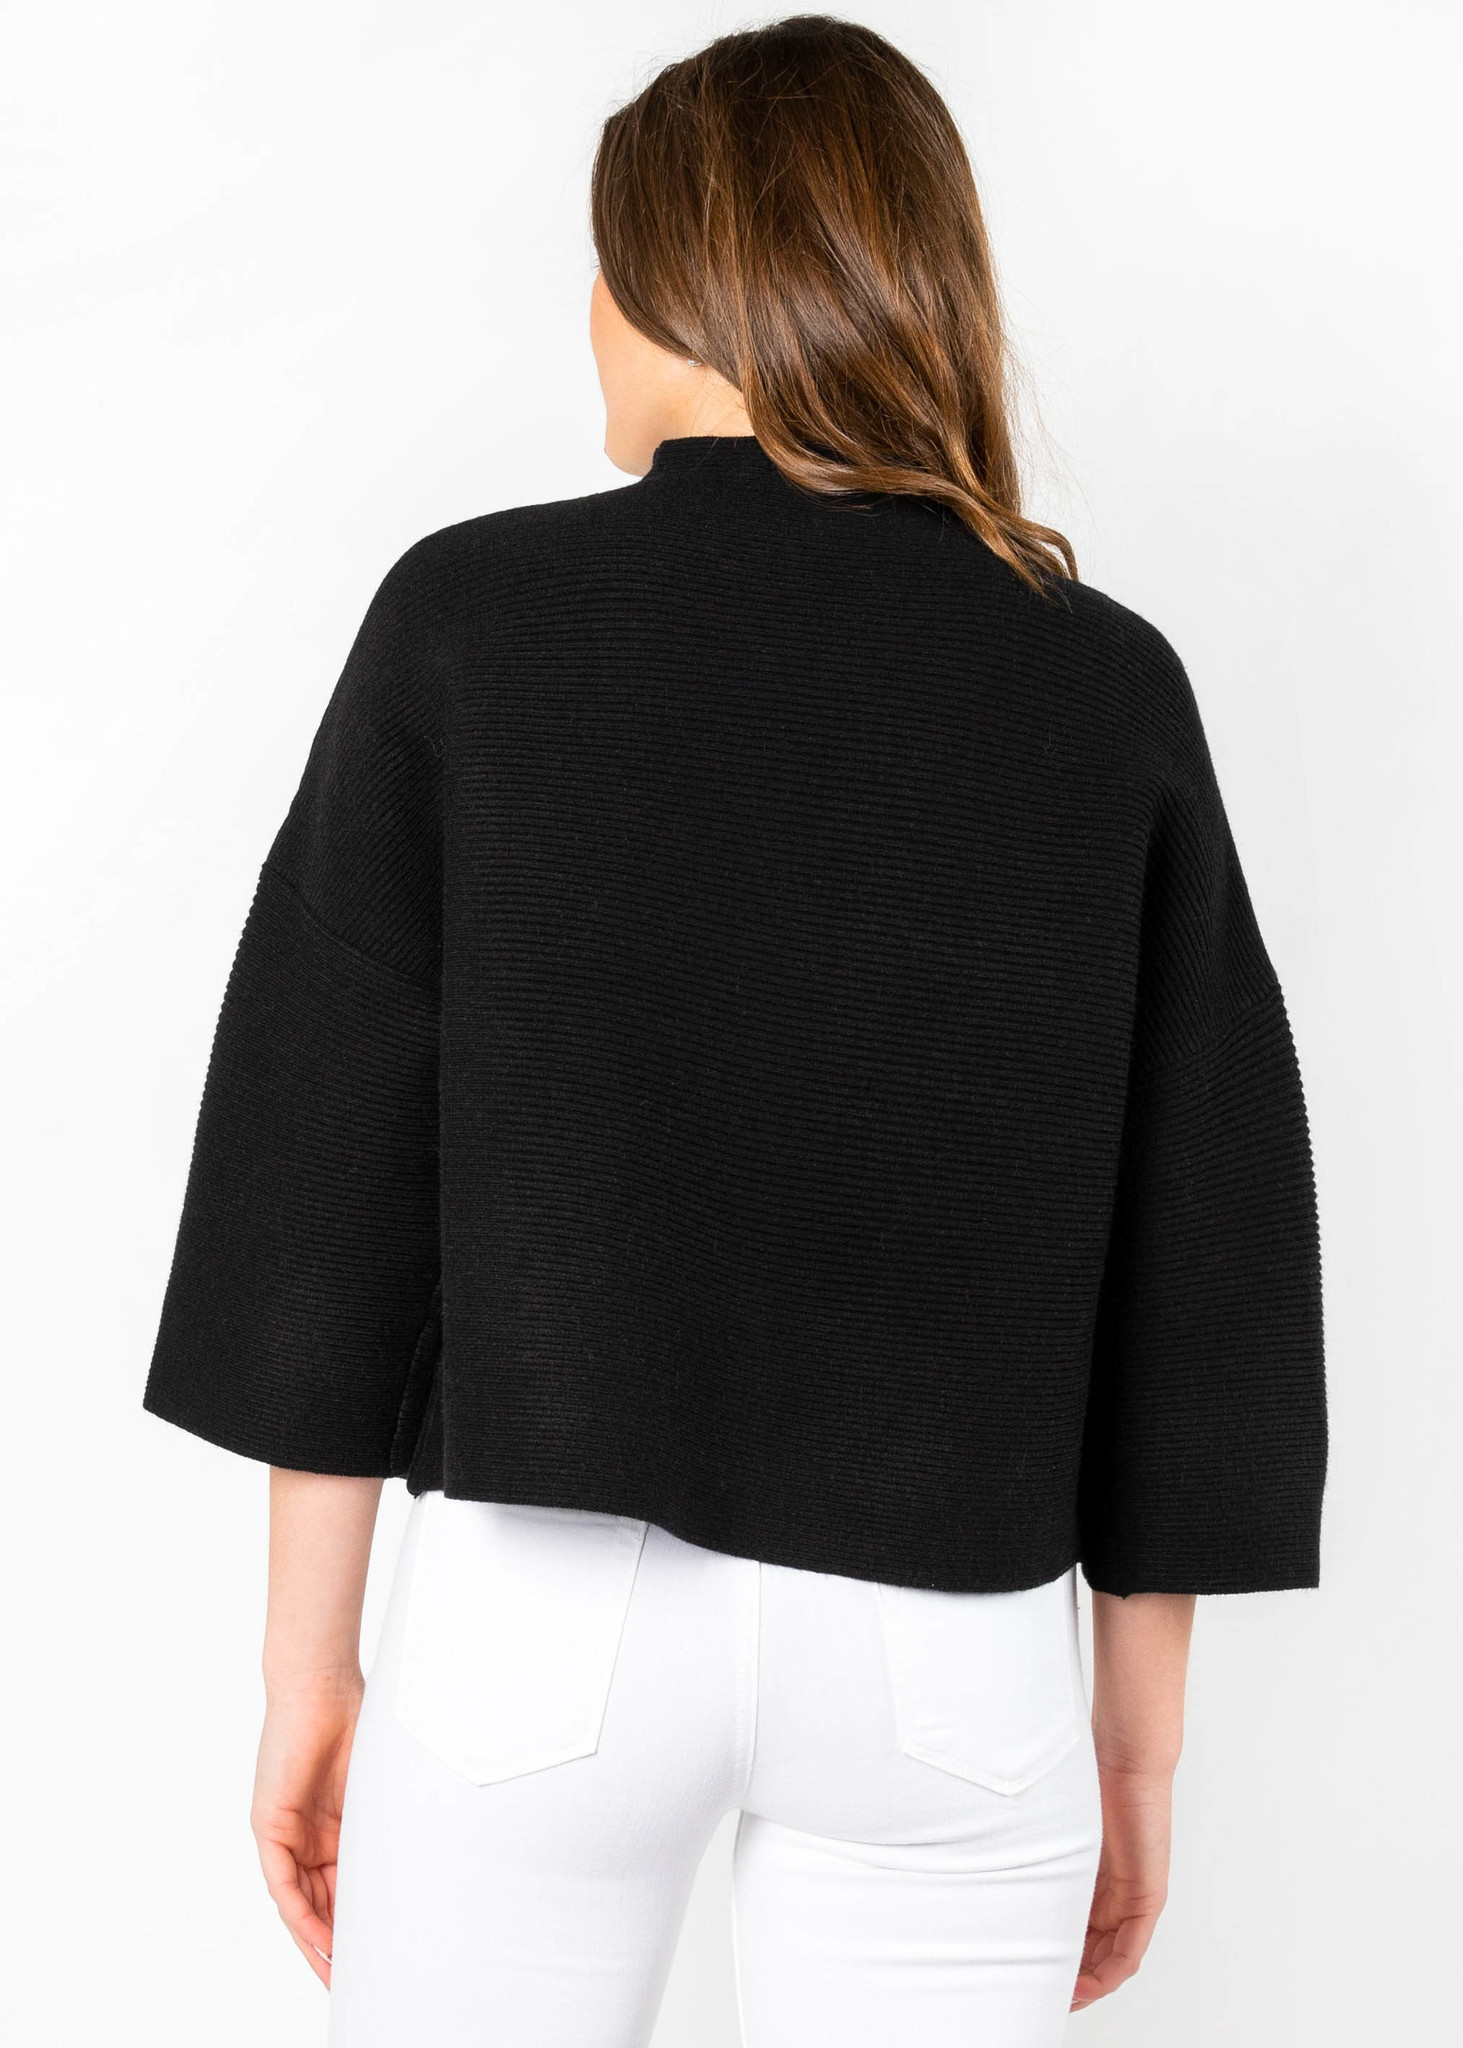 ANDIE MOCK NECK SWEATER - BLACK